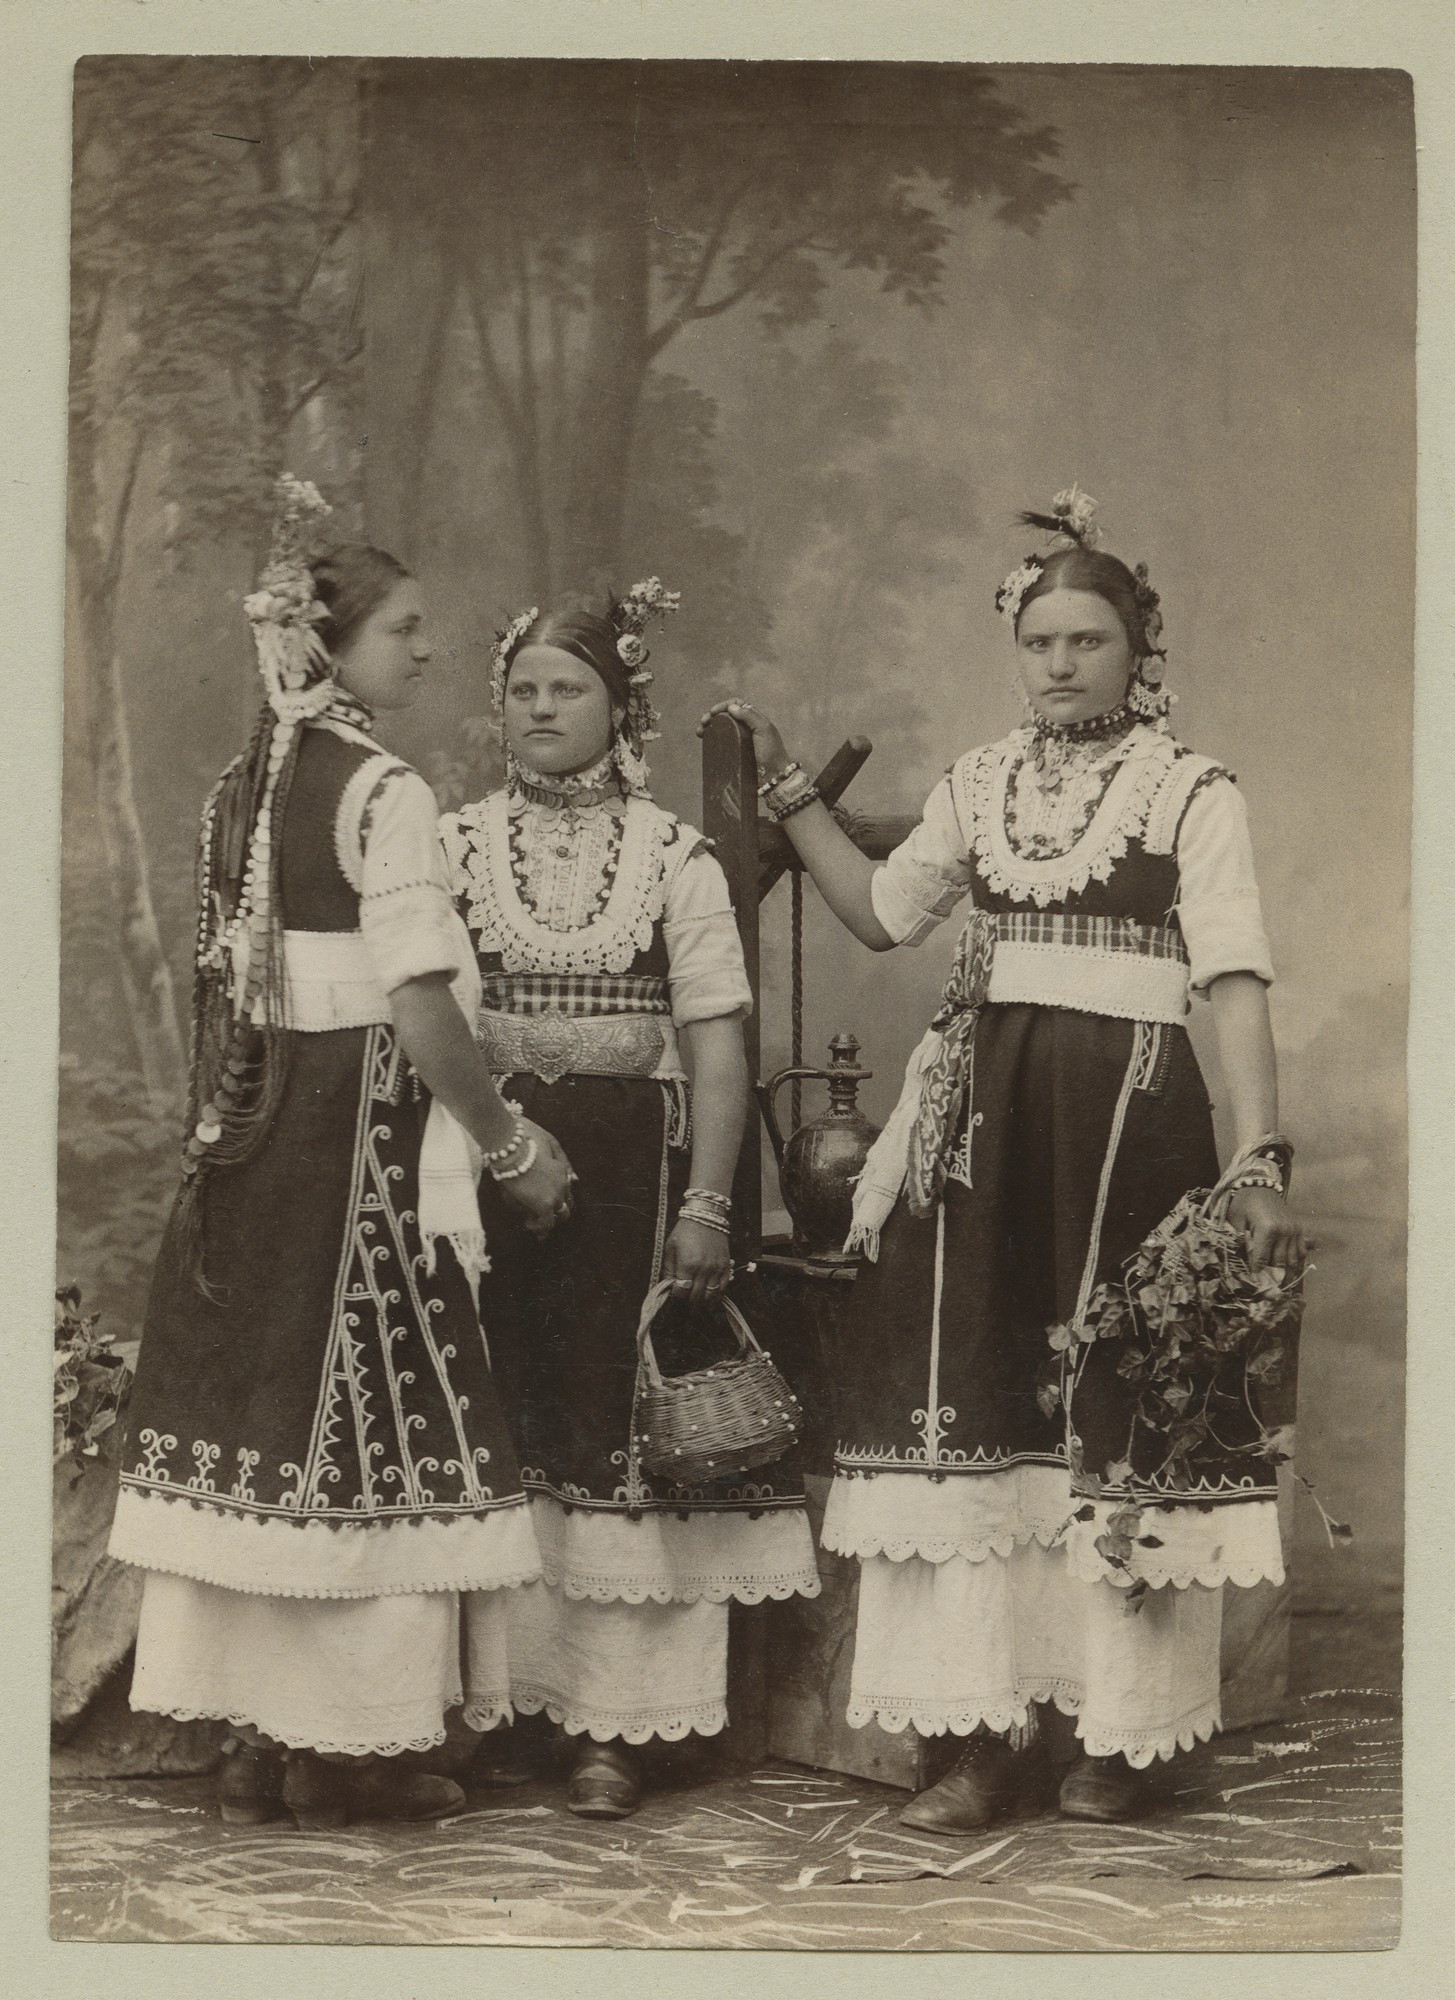 Studio portrait of three women in folk attire, © The Austrian Museum of Folk Life and Folk Art